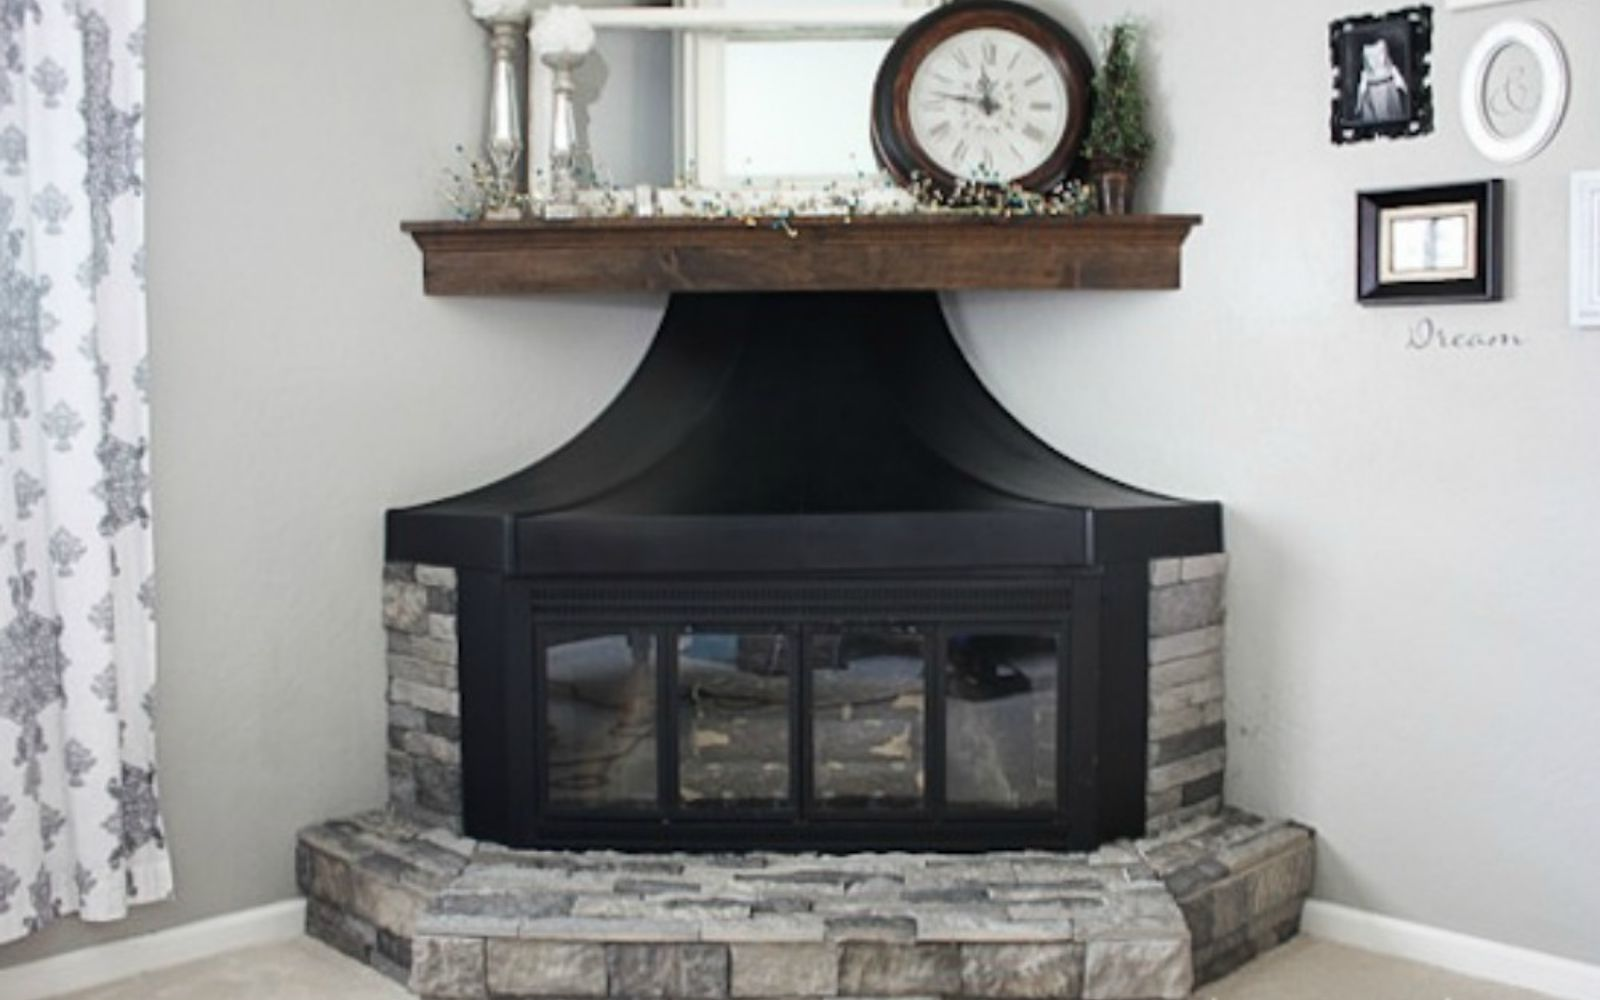 s 11 impressive ways to update your home with stone, concrete masonry, home decor, Update a standard brick fireplace